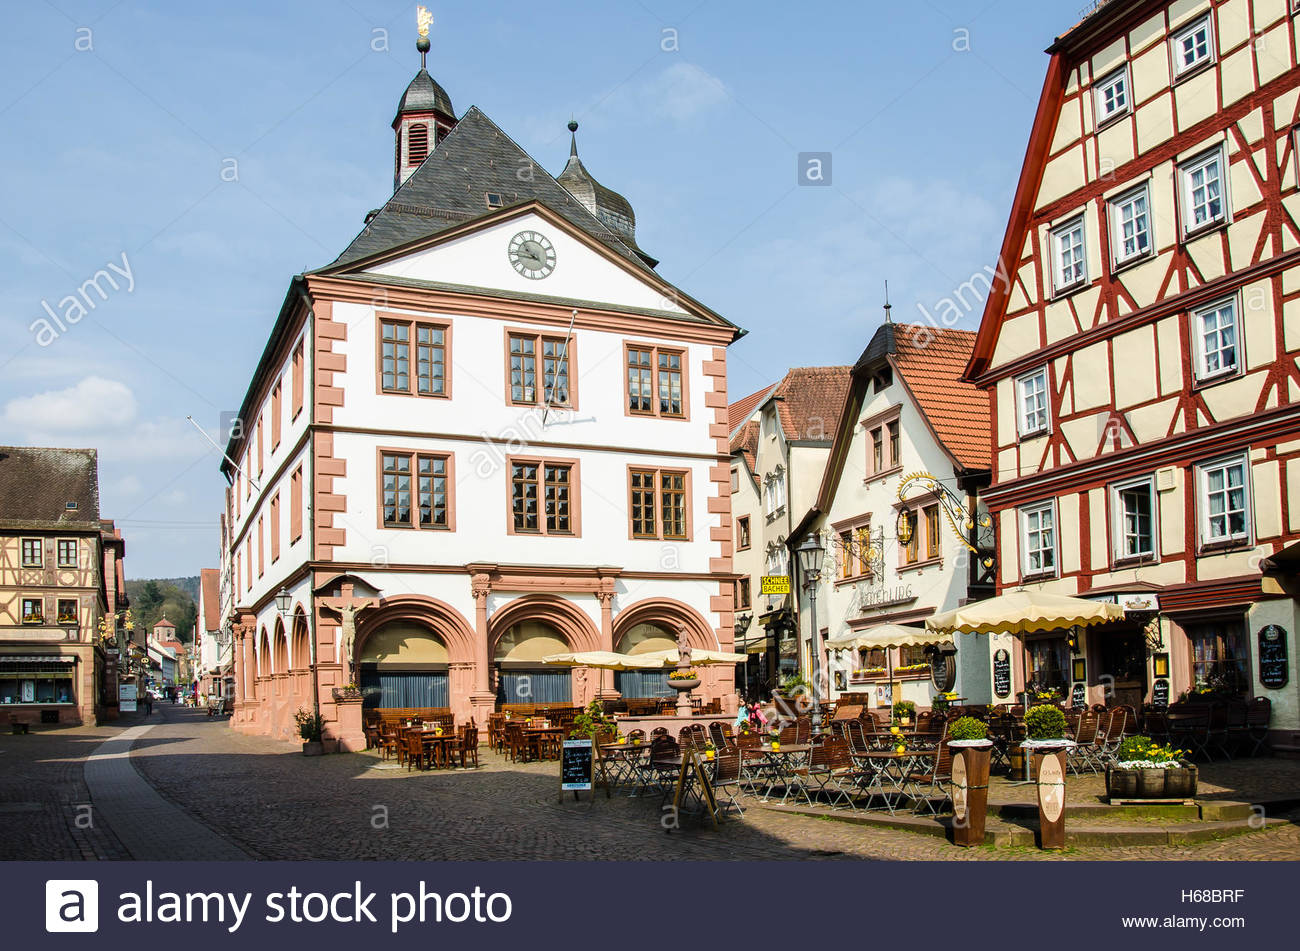 Lohr am Main Germany Lower Franconia proximity of Frankfurt am Main Stock Photo, Royalty Free